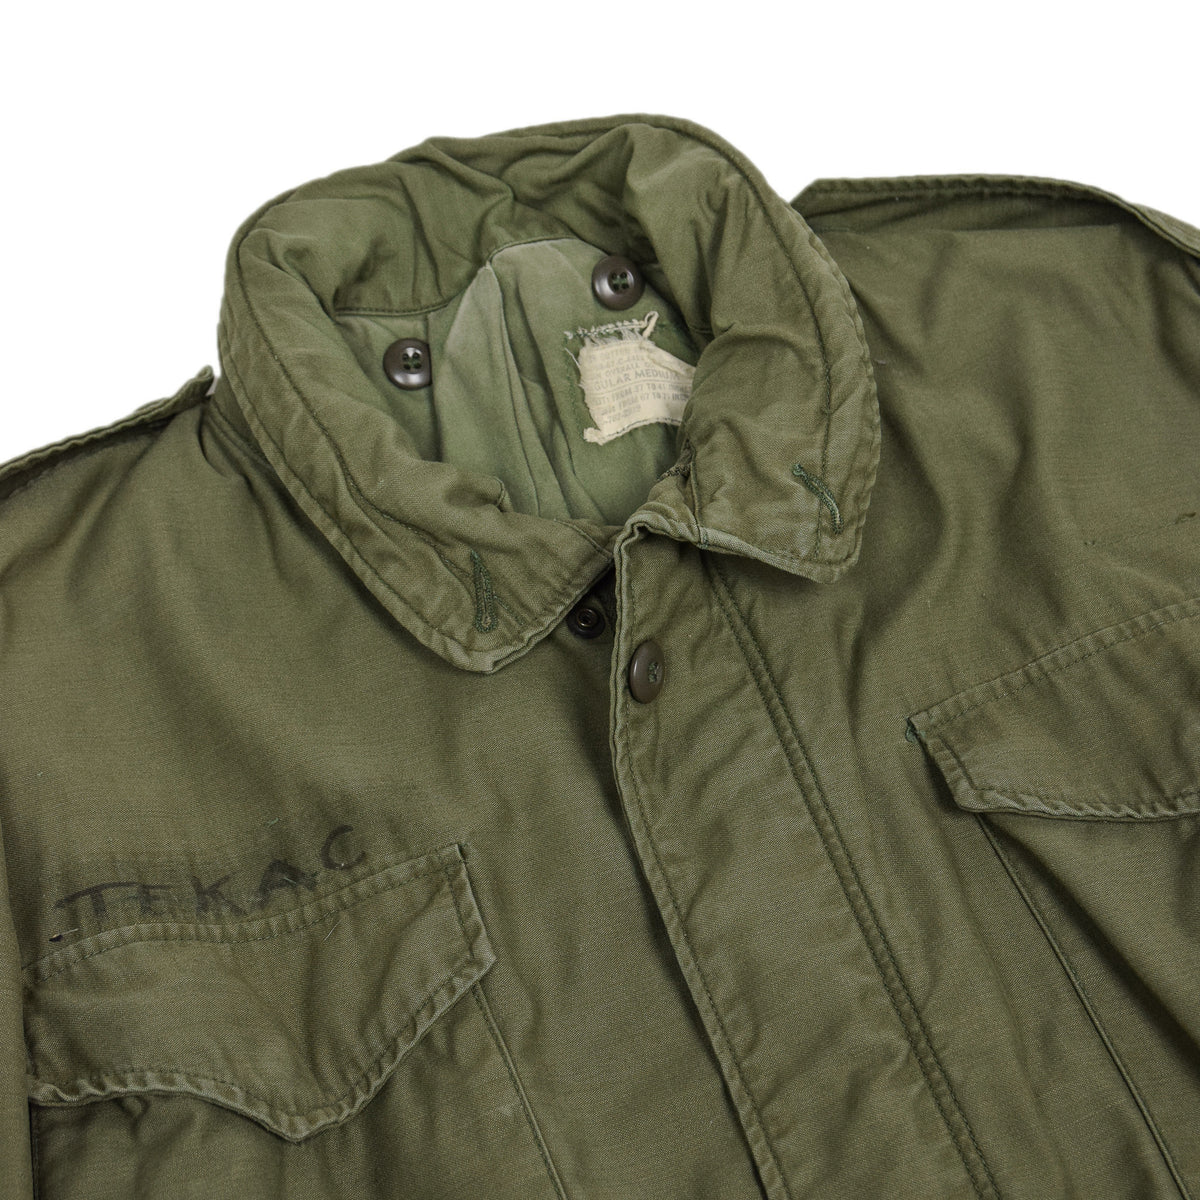 Vintage 60s Vietnam M-65 Field Cotton Sateen 0G-107 Green US Army Coat M Reg chest